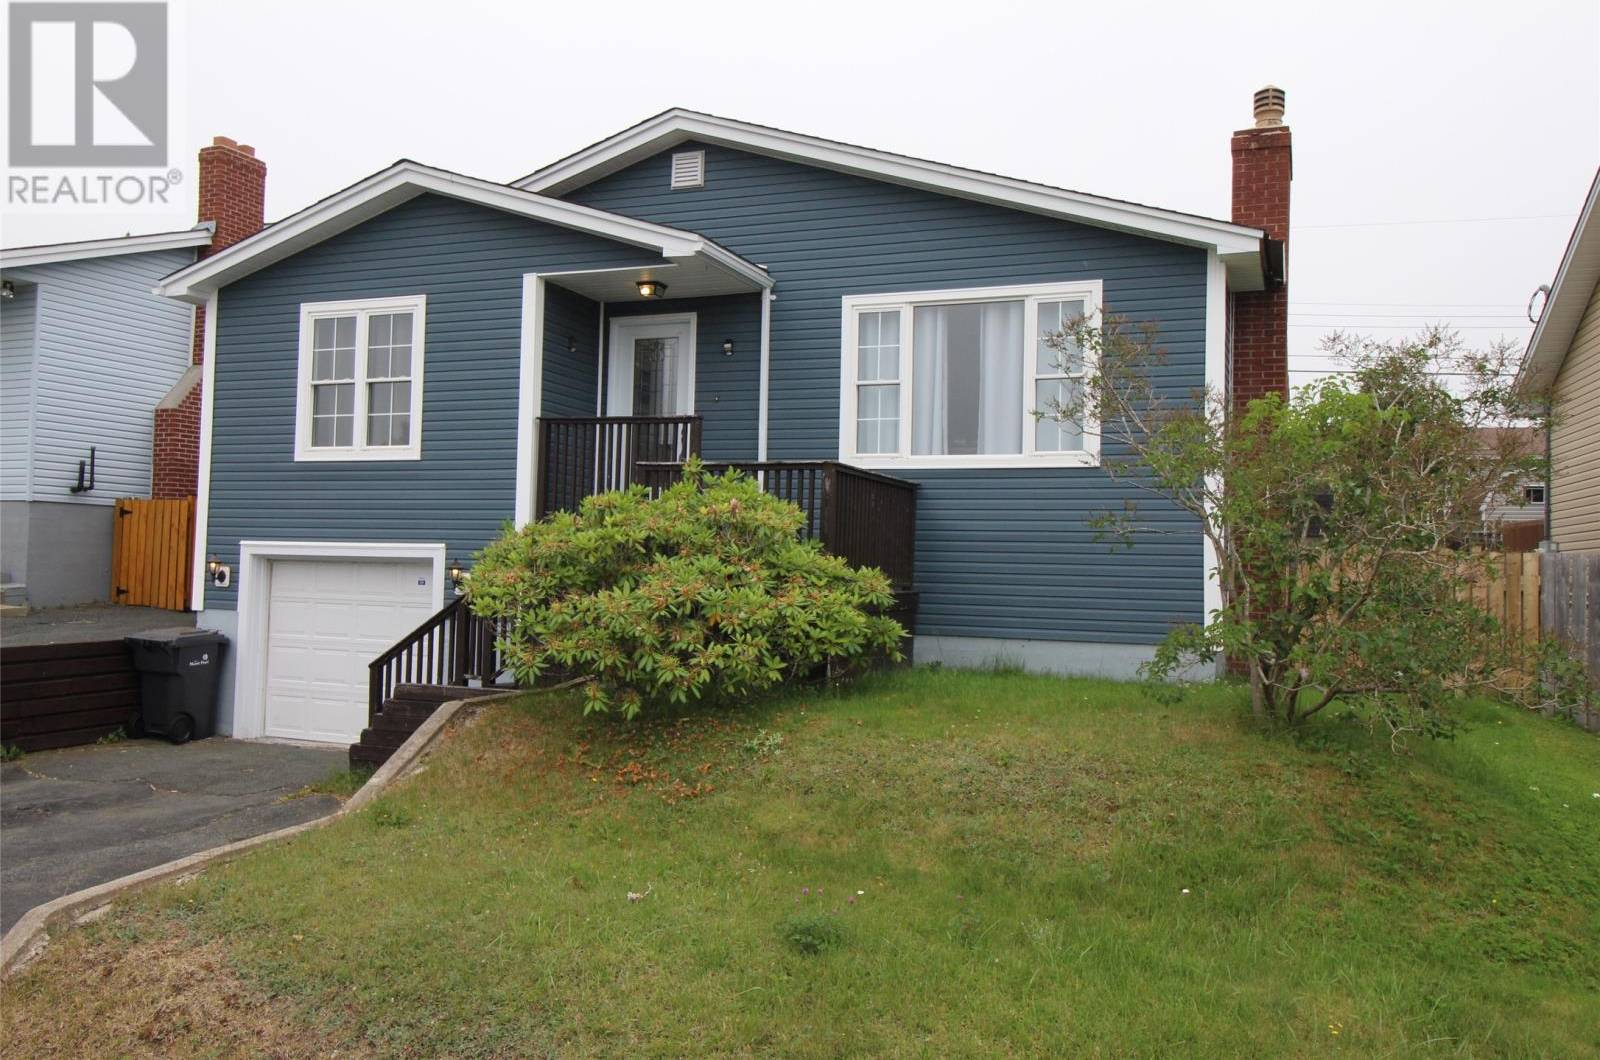 House for sale at 40 Third St Mt. Pearl Newfoundland - MLS: 1200386